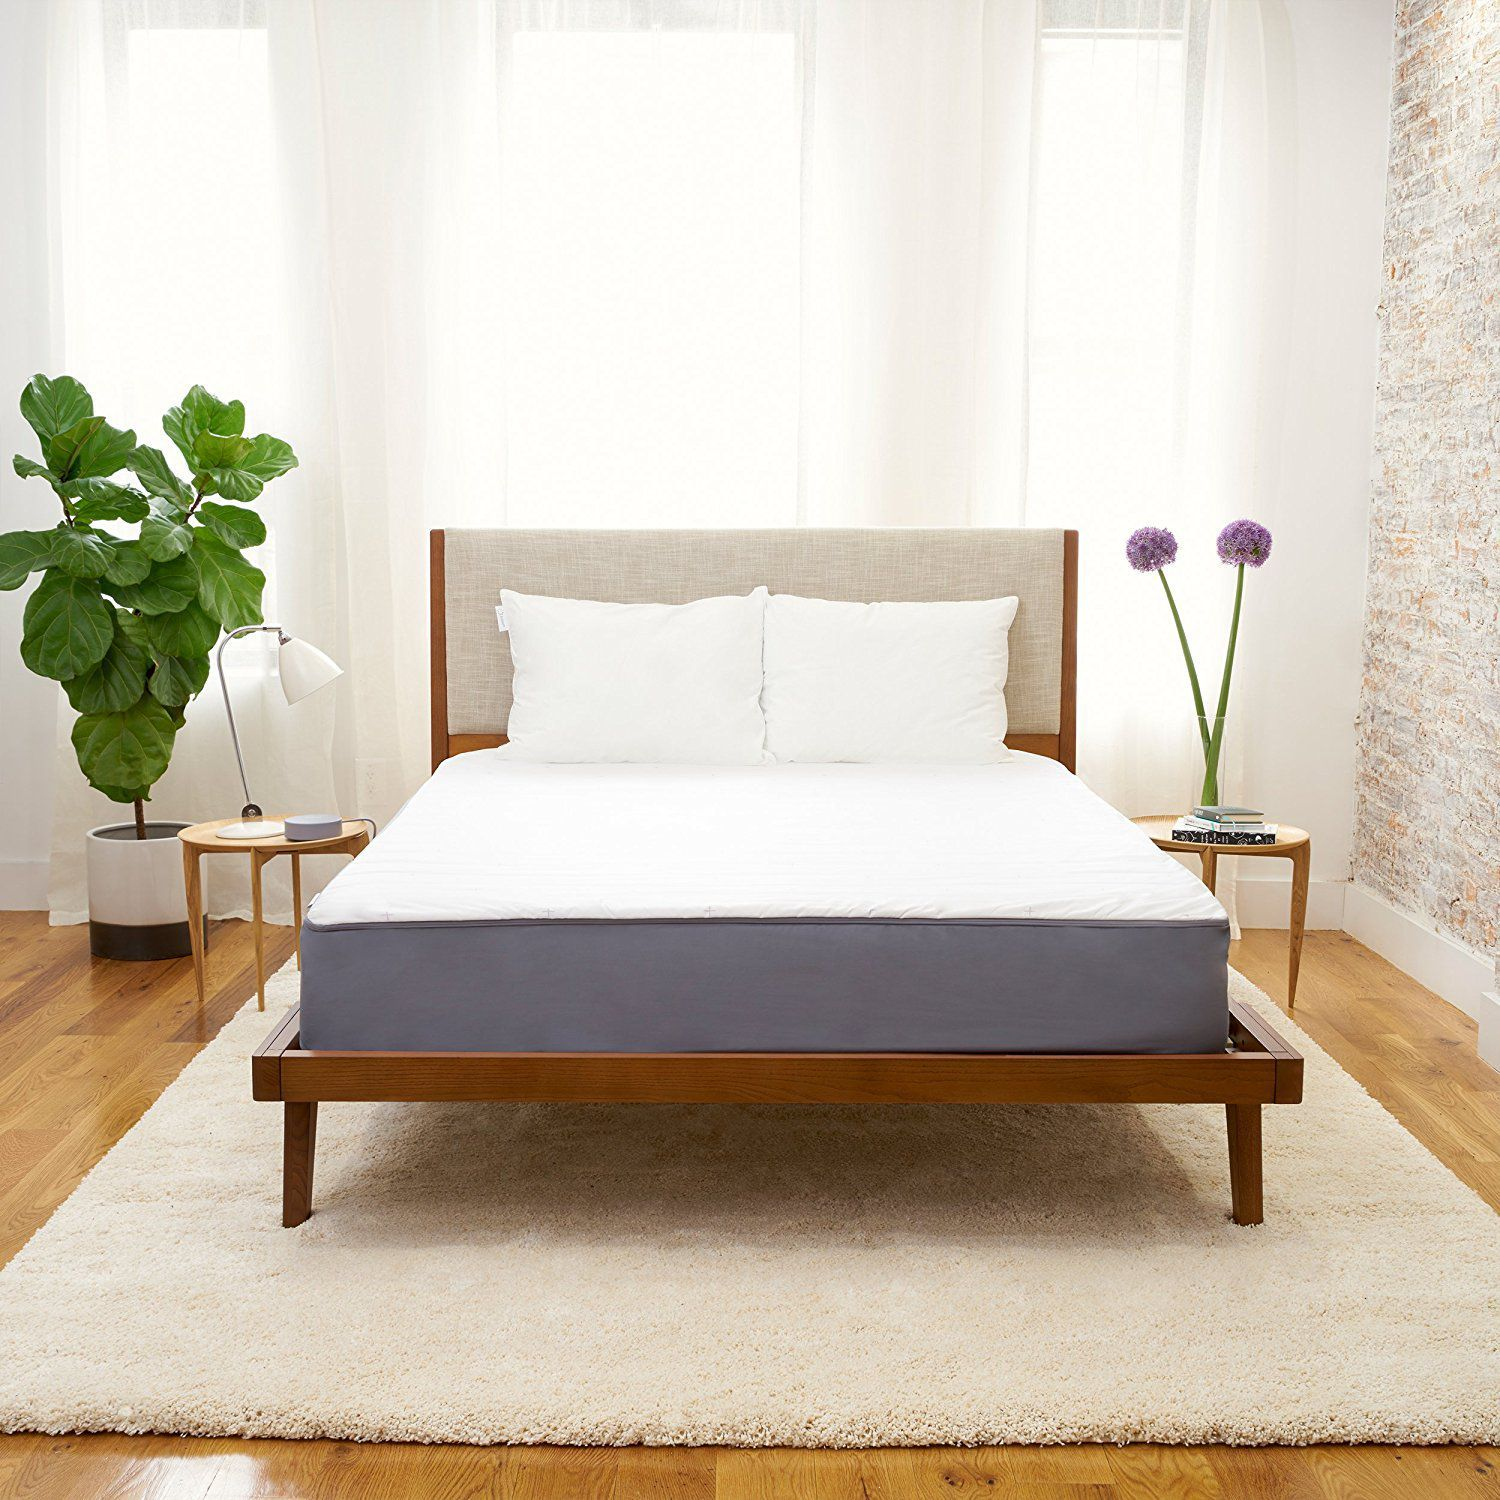 The 8 Best Mattresses You Can Buy Online Mattress, Cool